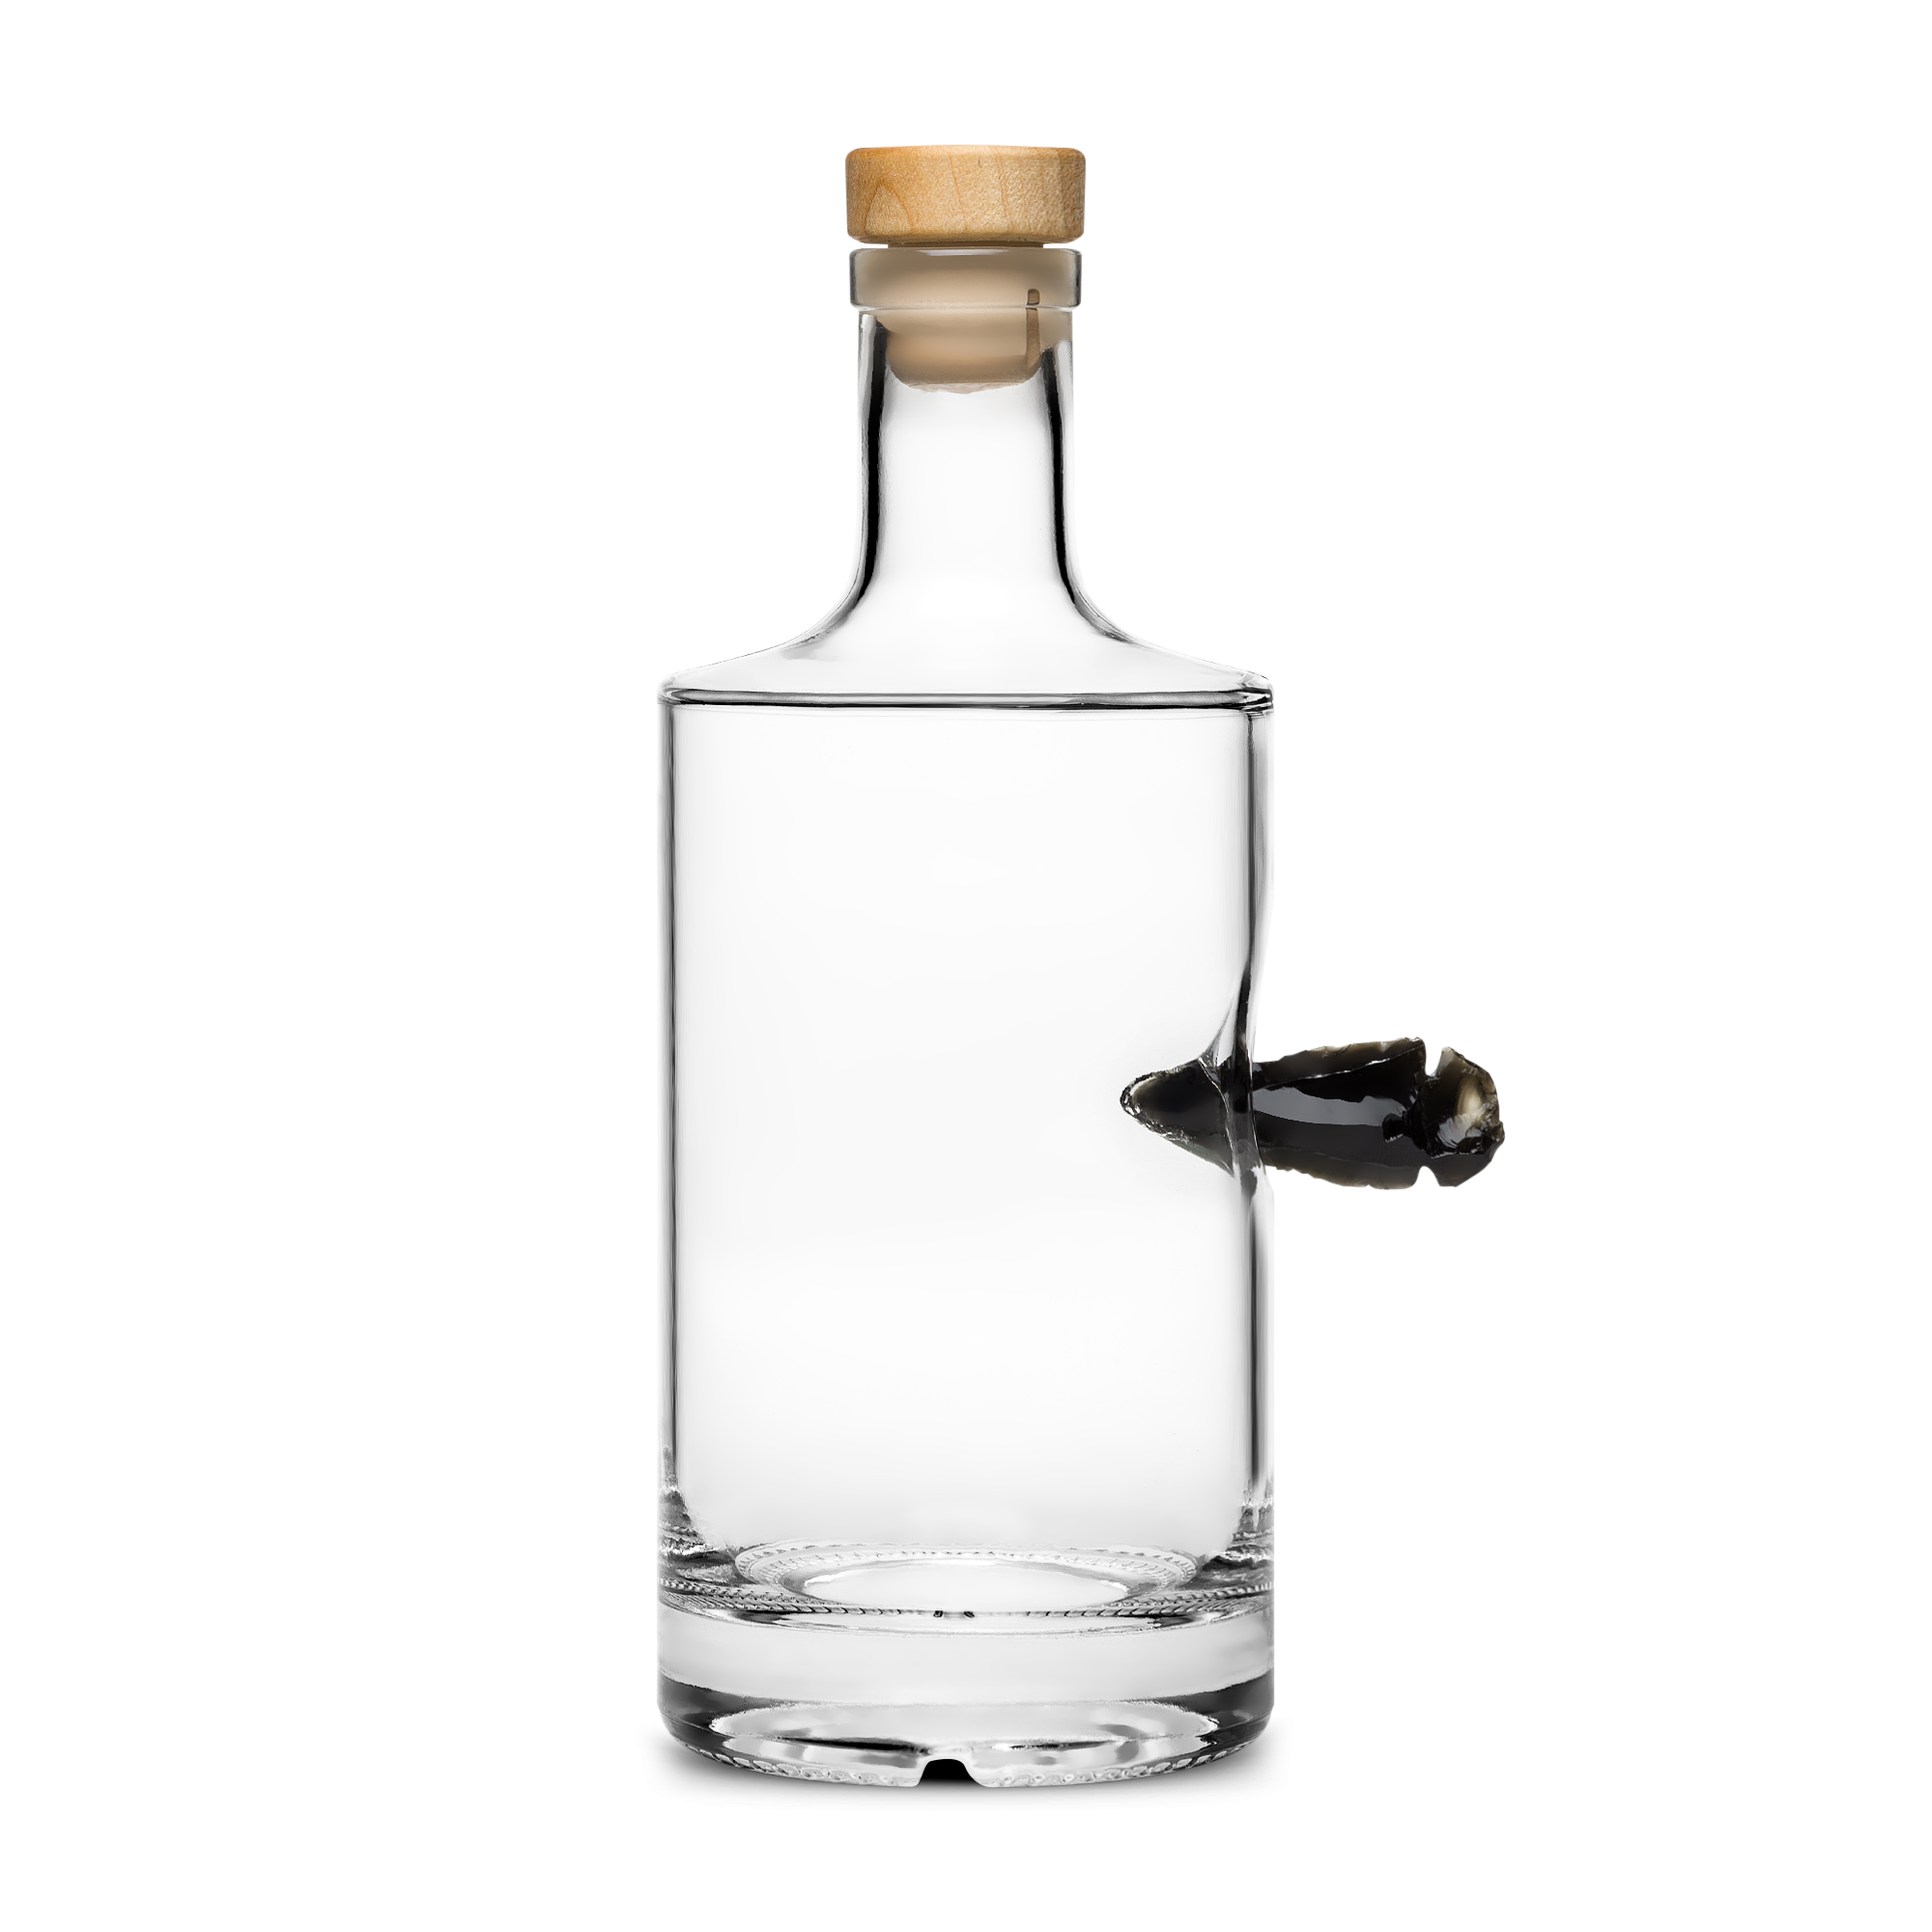 glass bottle product photography